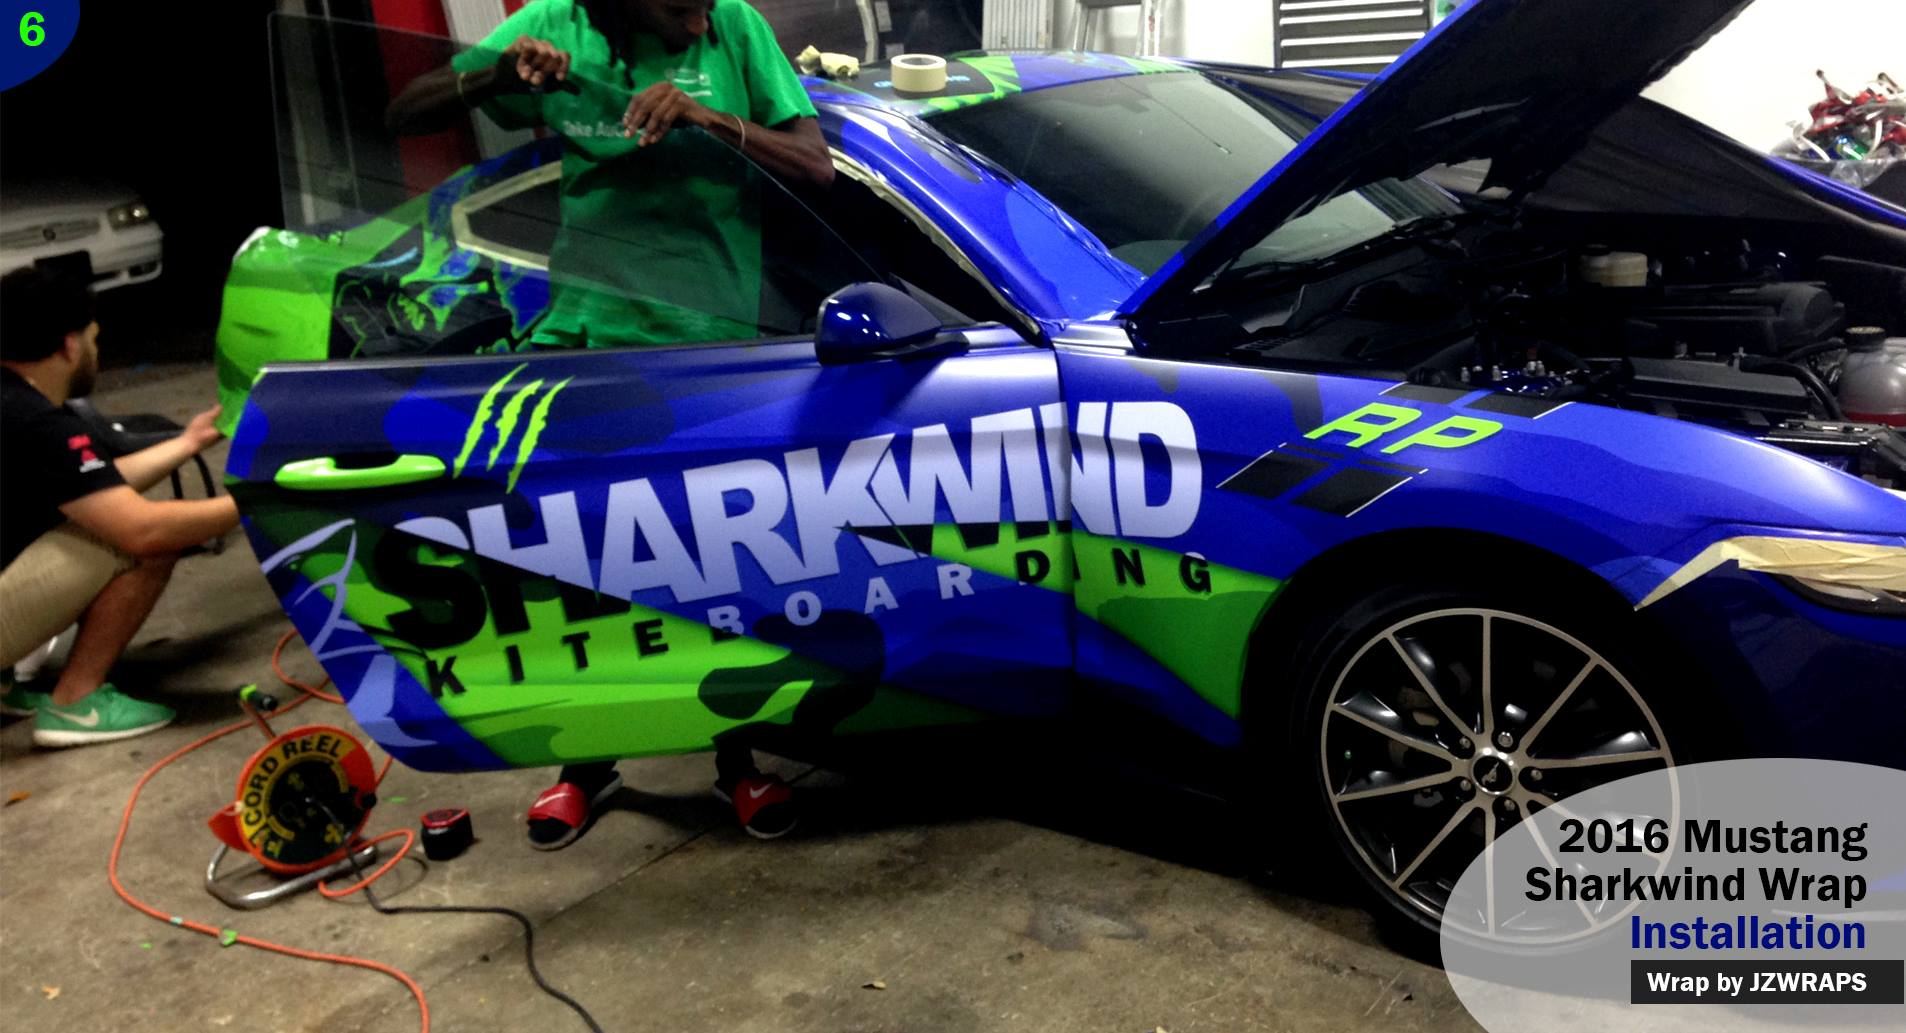 Sharkwind 2016 Mustang Wrap